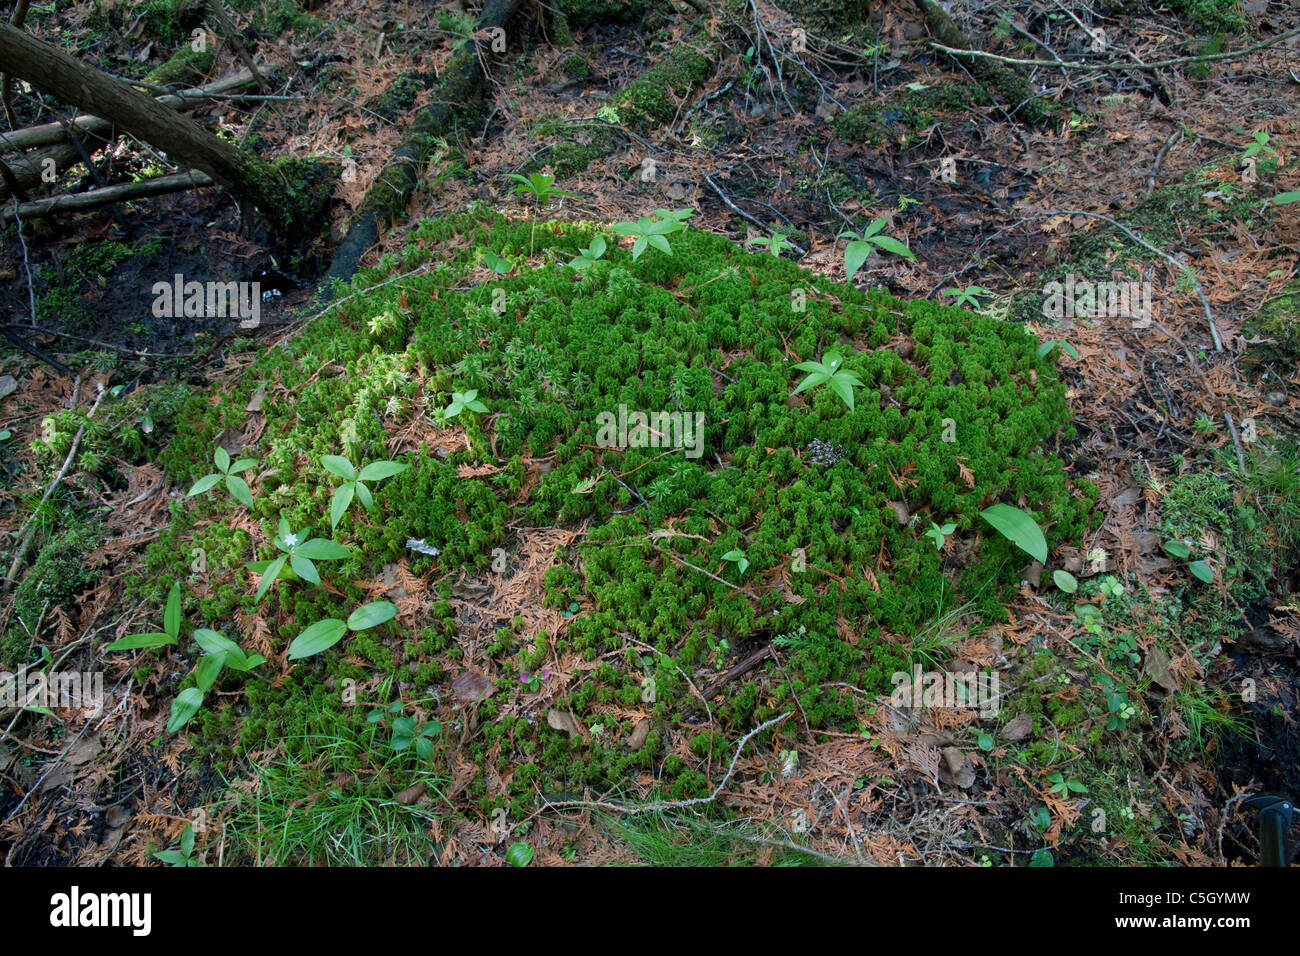 Sphagnum moss hummock in White Cedar Balsam Fir Swamp Northern Michigan USA - Stock Image